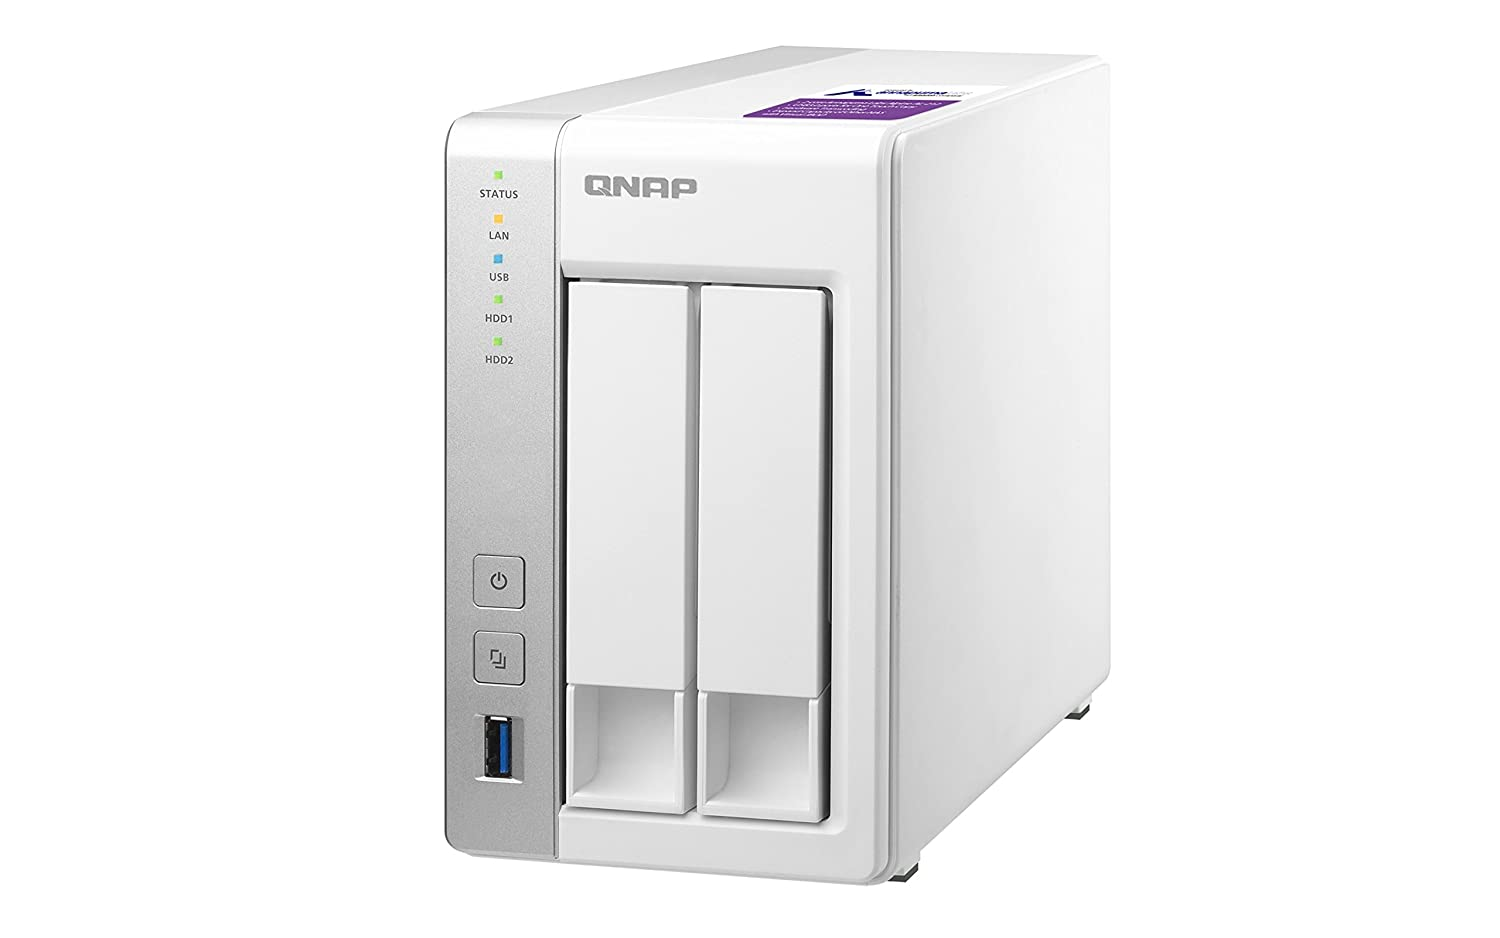 QNAP TS-231P, 2bay, 1GB RAM, Cost-effective NAS (Network-attached Storage),  Private Cloud, Backup, Share & Restore Files, stream multimedia files with